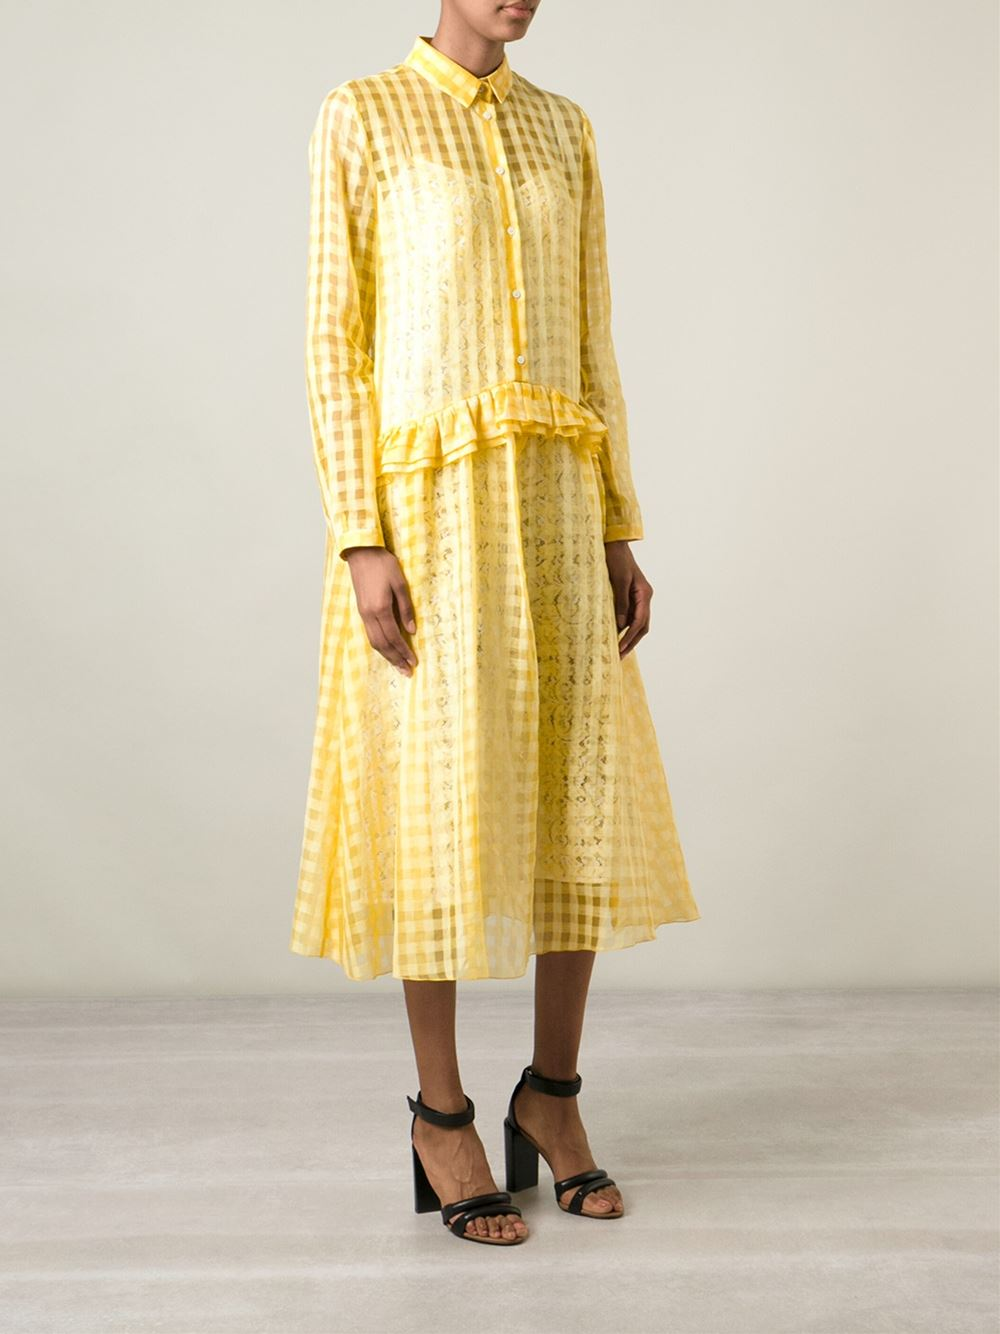 Nº21 gingham check sheer dress